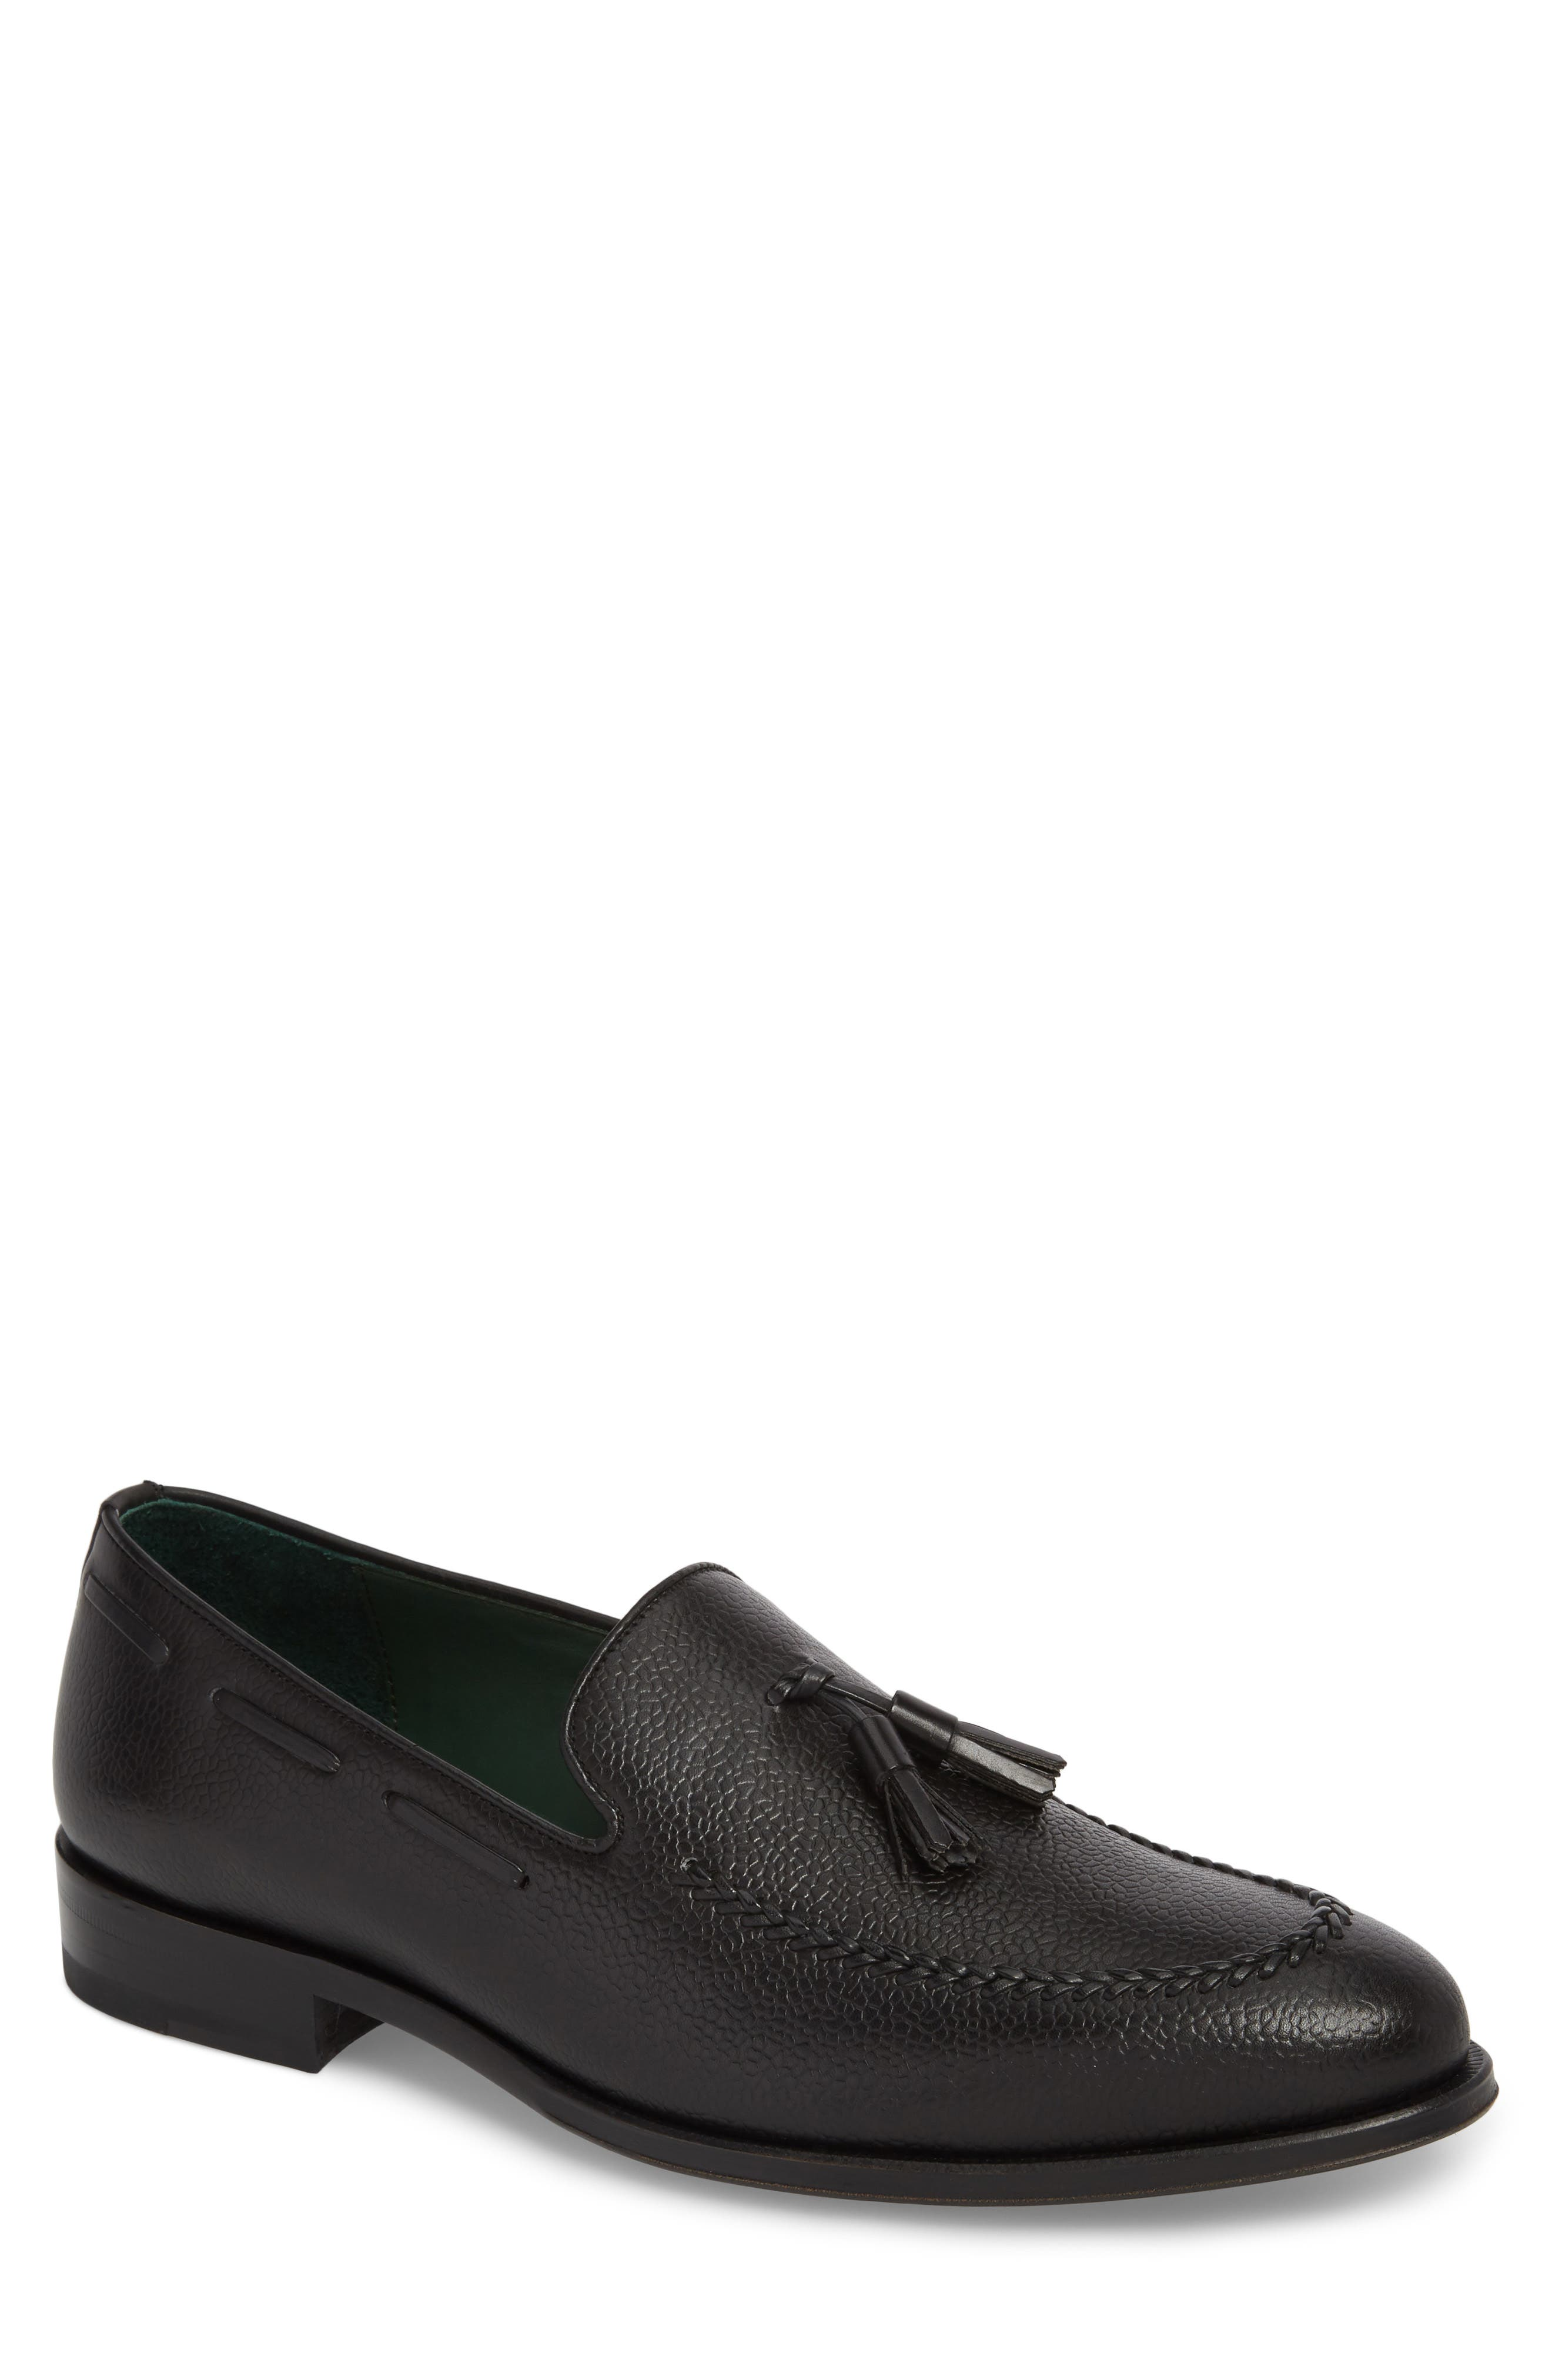 Men's Sabina Loafer